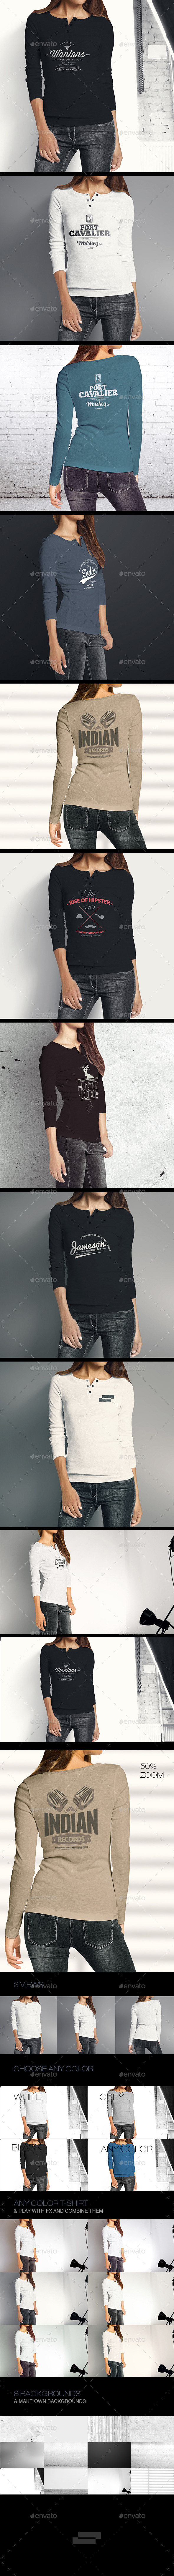 Woman Longsleeve Shirt Mock-up - T-shirts Apparel